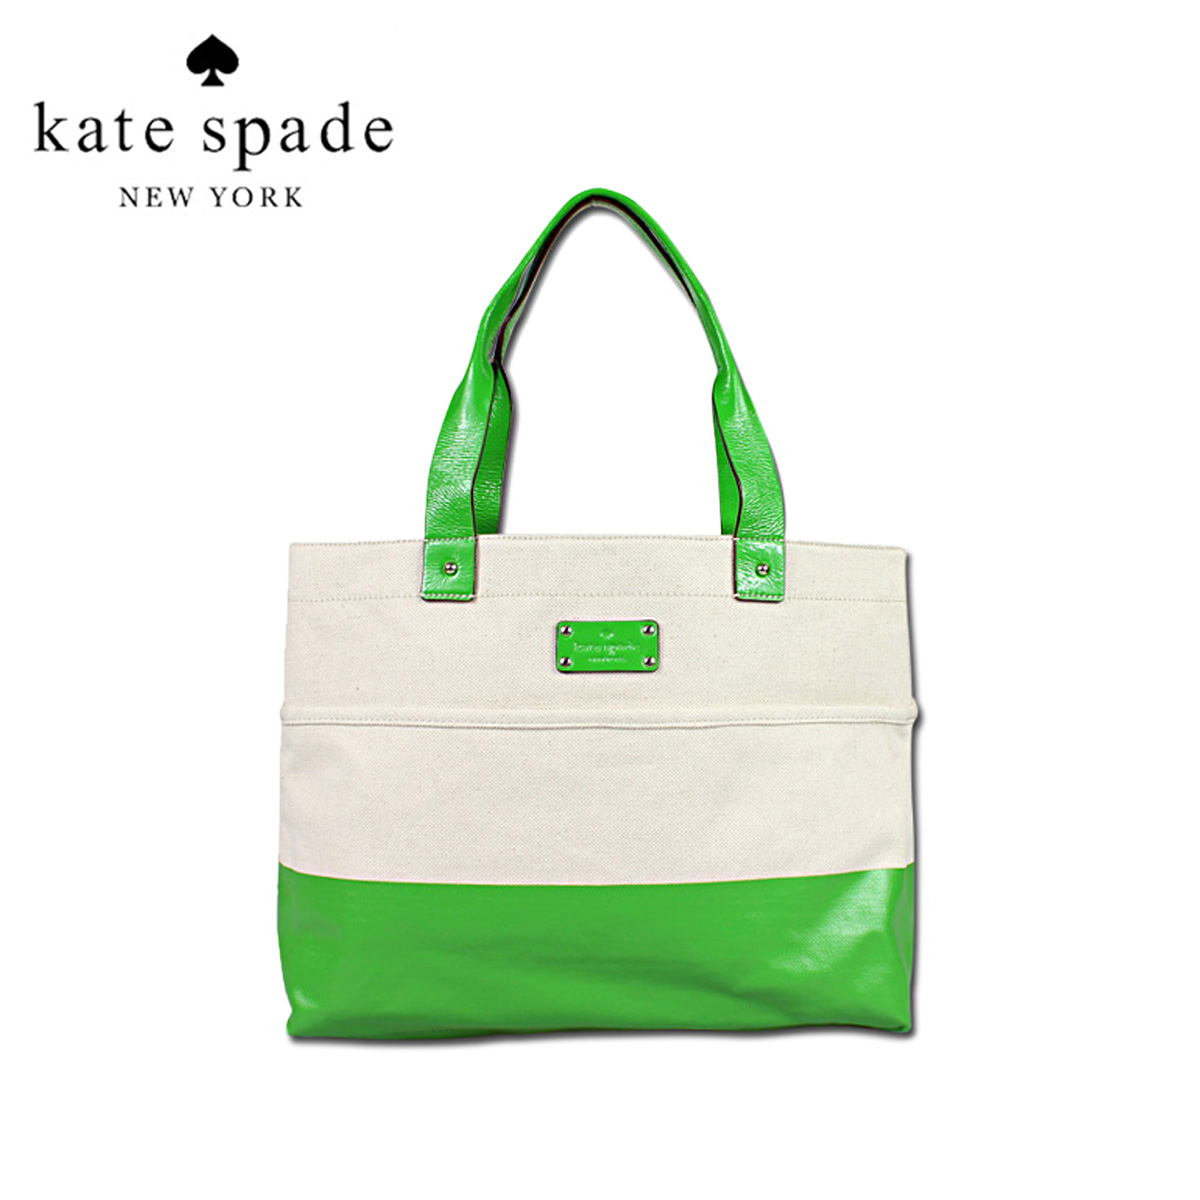 A Revolution Of The Accessories World Began In There And As For Kate Spade Hanasaki Came To Simple Model Firm Material Colorful Color